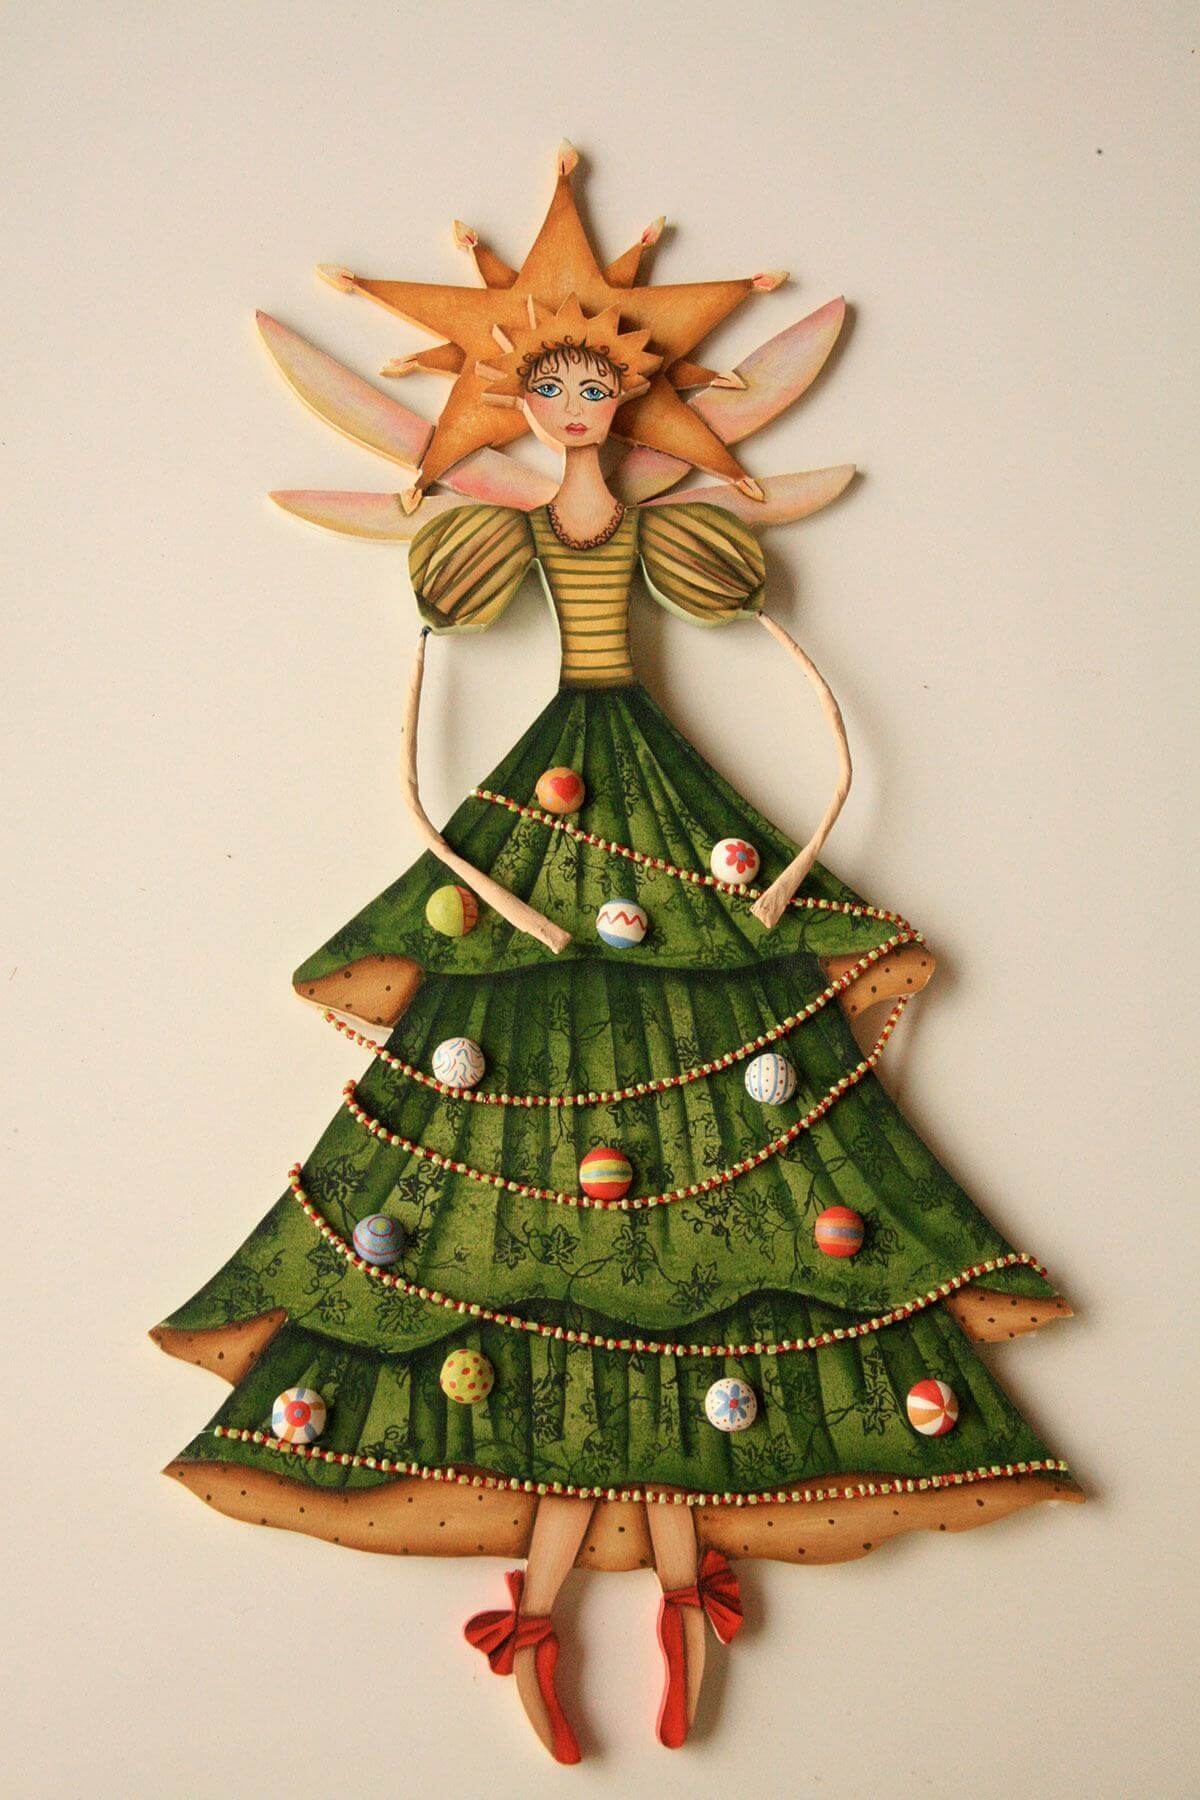 Christmas craft made of wood with fairy shape